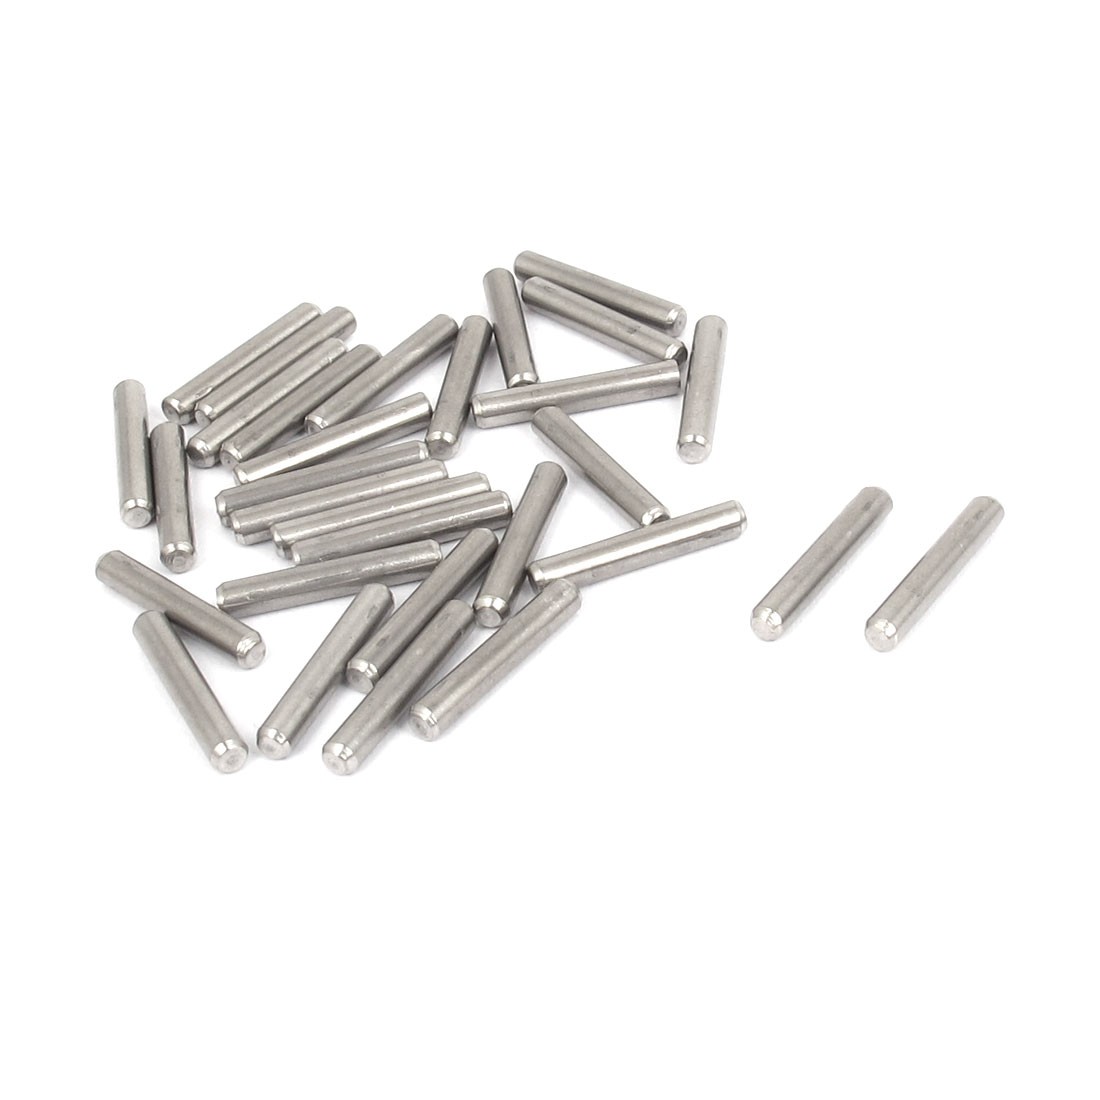 3mmx18mm 304 Stainless Steel Parallel Dowel Pins Fastener Elements 30pcs